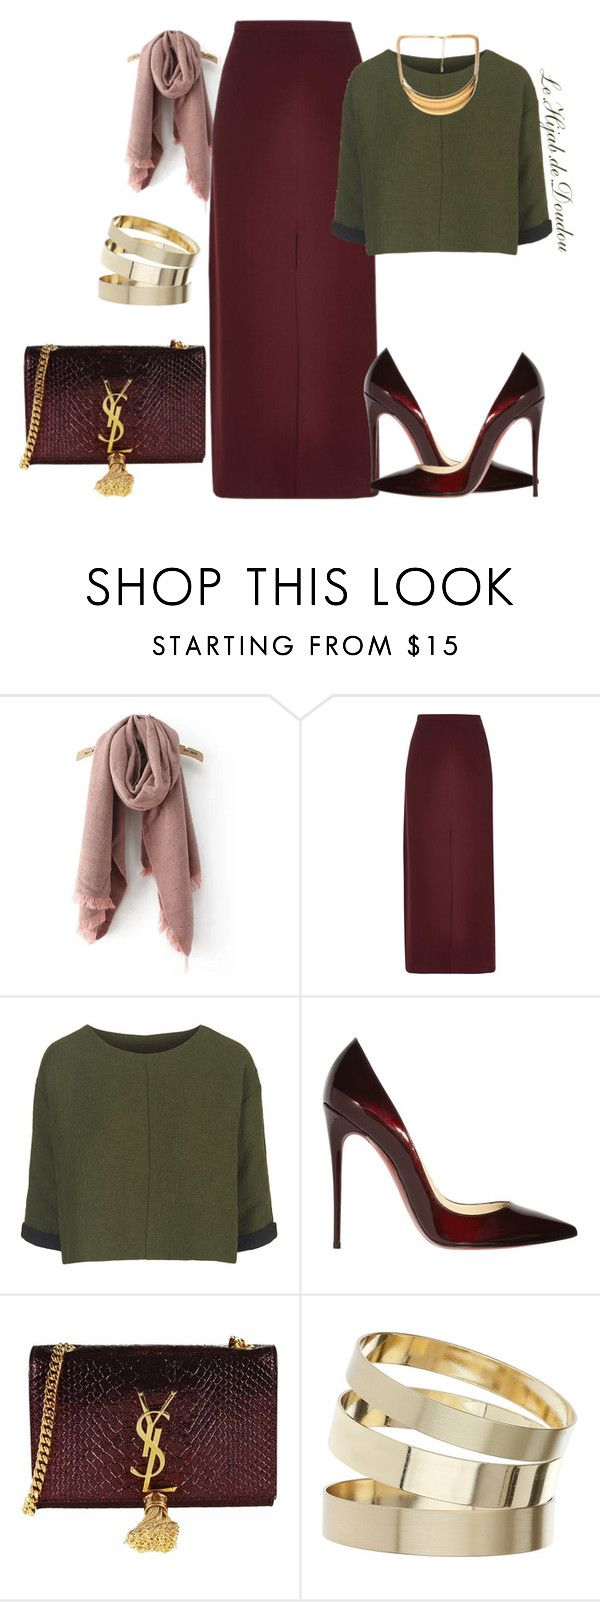 """""""Hijab Outfit"""" by le-hijab-de-doudou ❤ liked on Polyvore featuring River Island, Topshop, Christian Louboutin, Yves Saint Laurent, Miss Selfridge and Forever 21"""